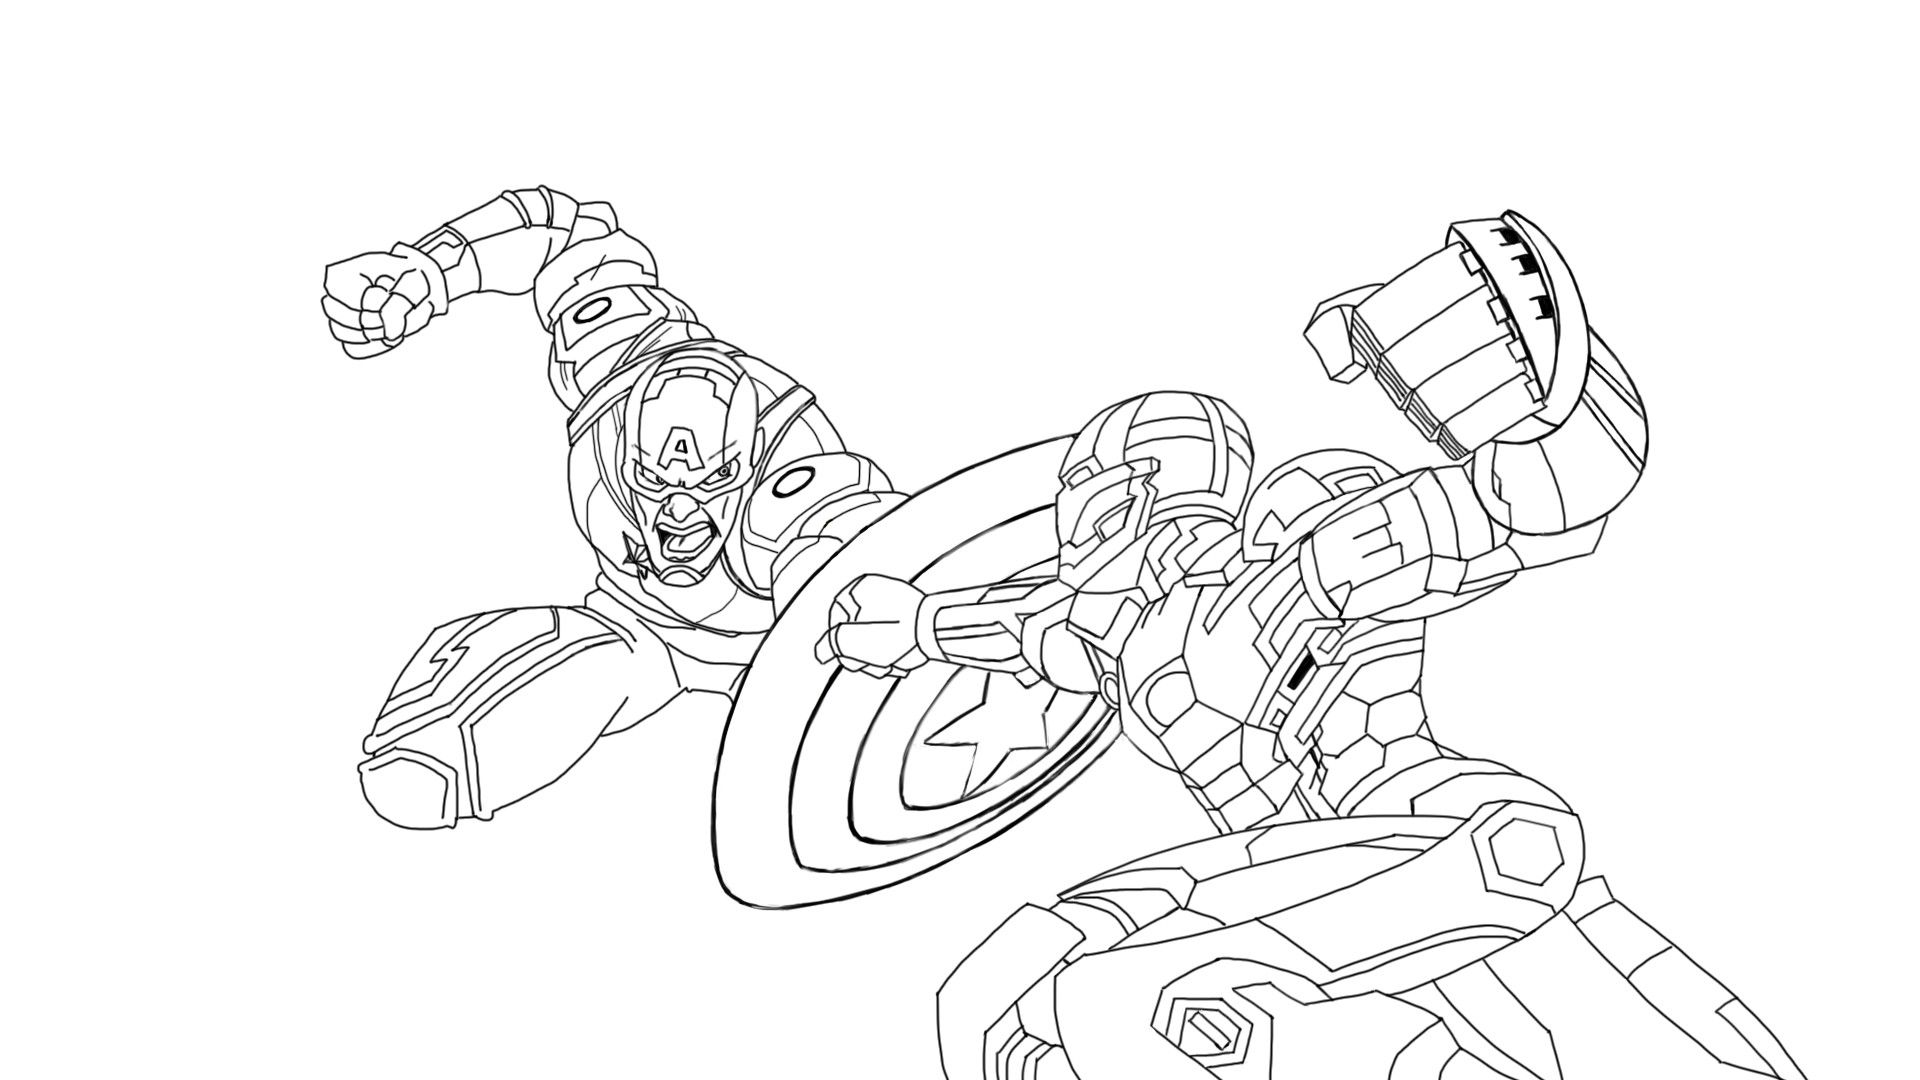 Fantastic Iron Man Coloring Pages Ideas Iron Man Vs Captain America Cartoon Coloring Pages Coloring Pages